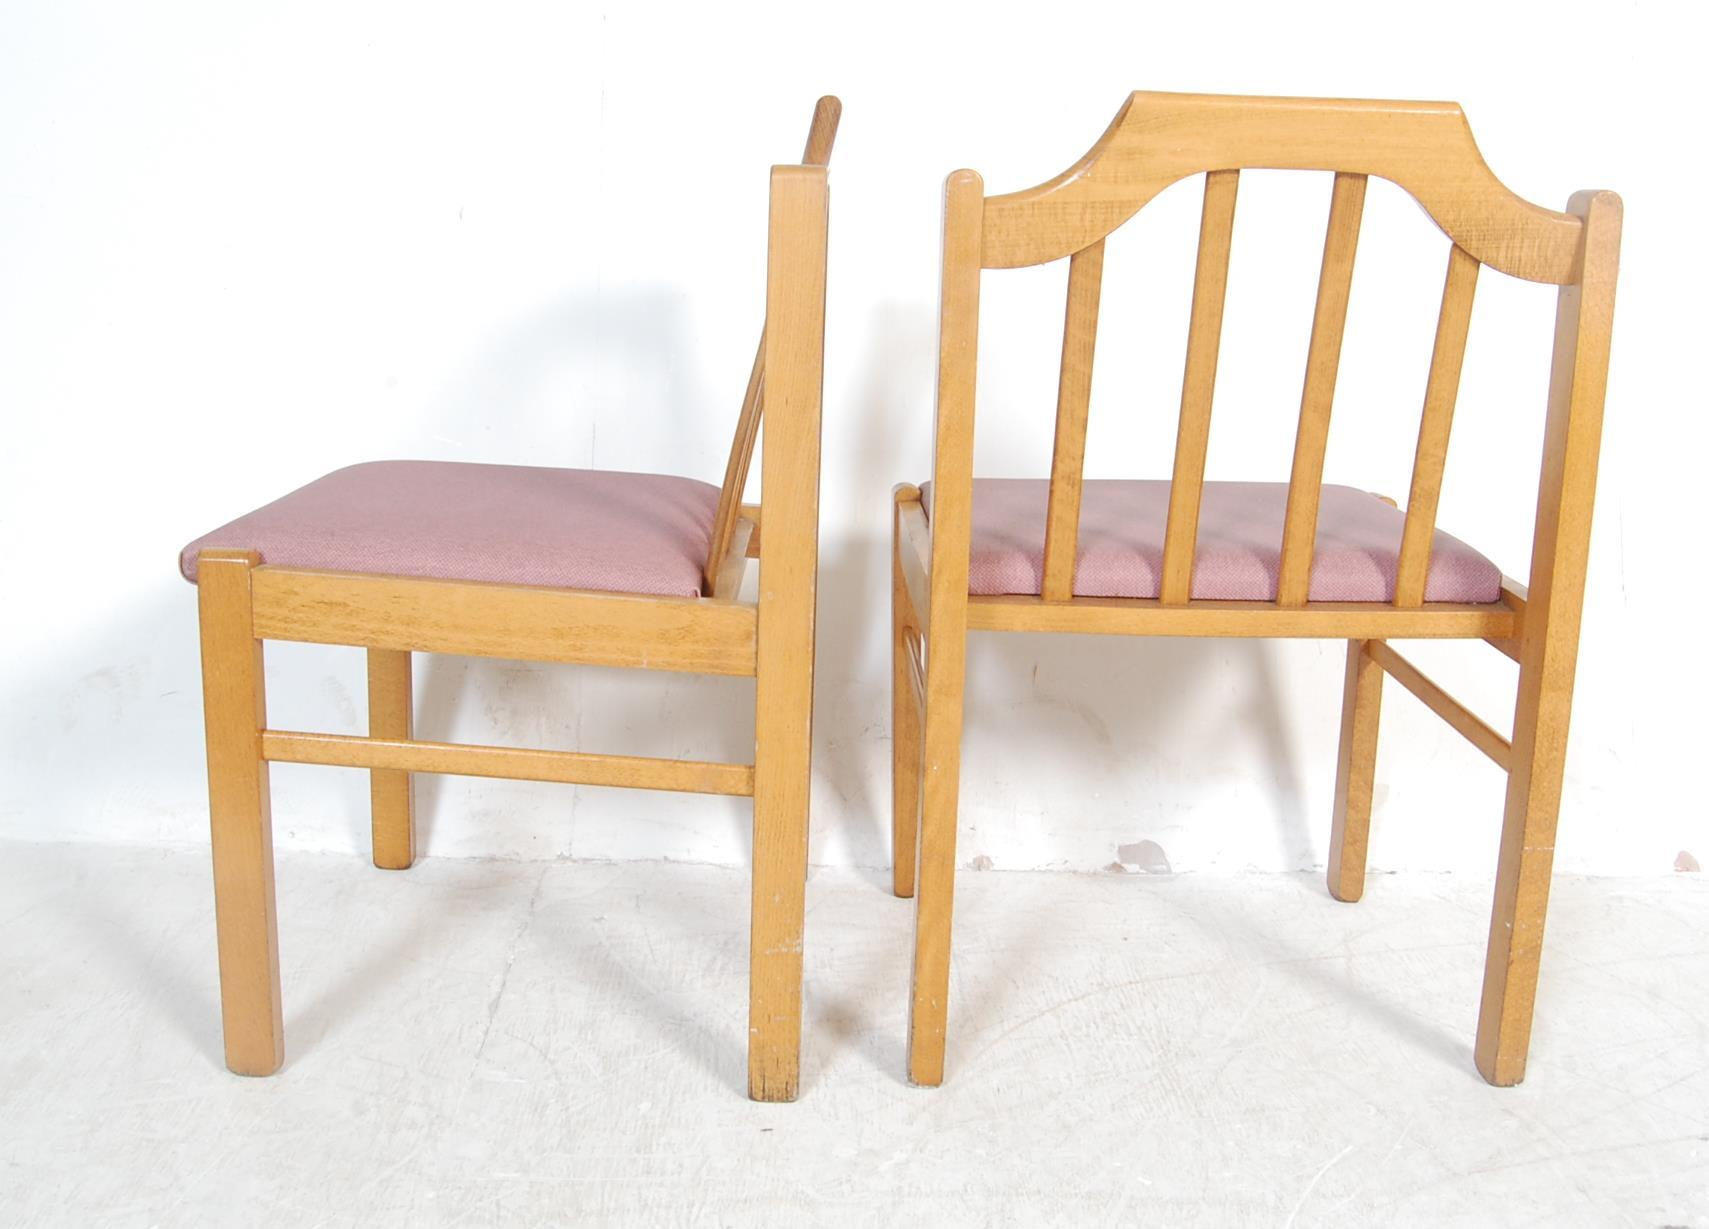 EIGHT VINTAGE GOLDEN OAK DINING CHAIRS - Image 7 of 8